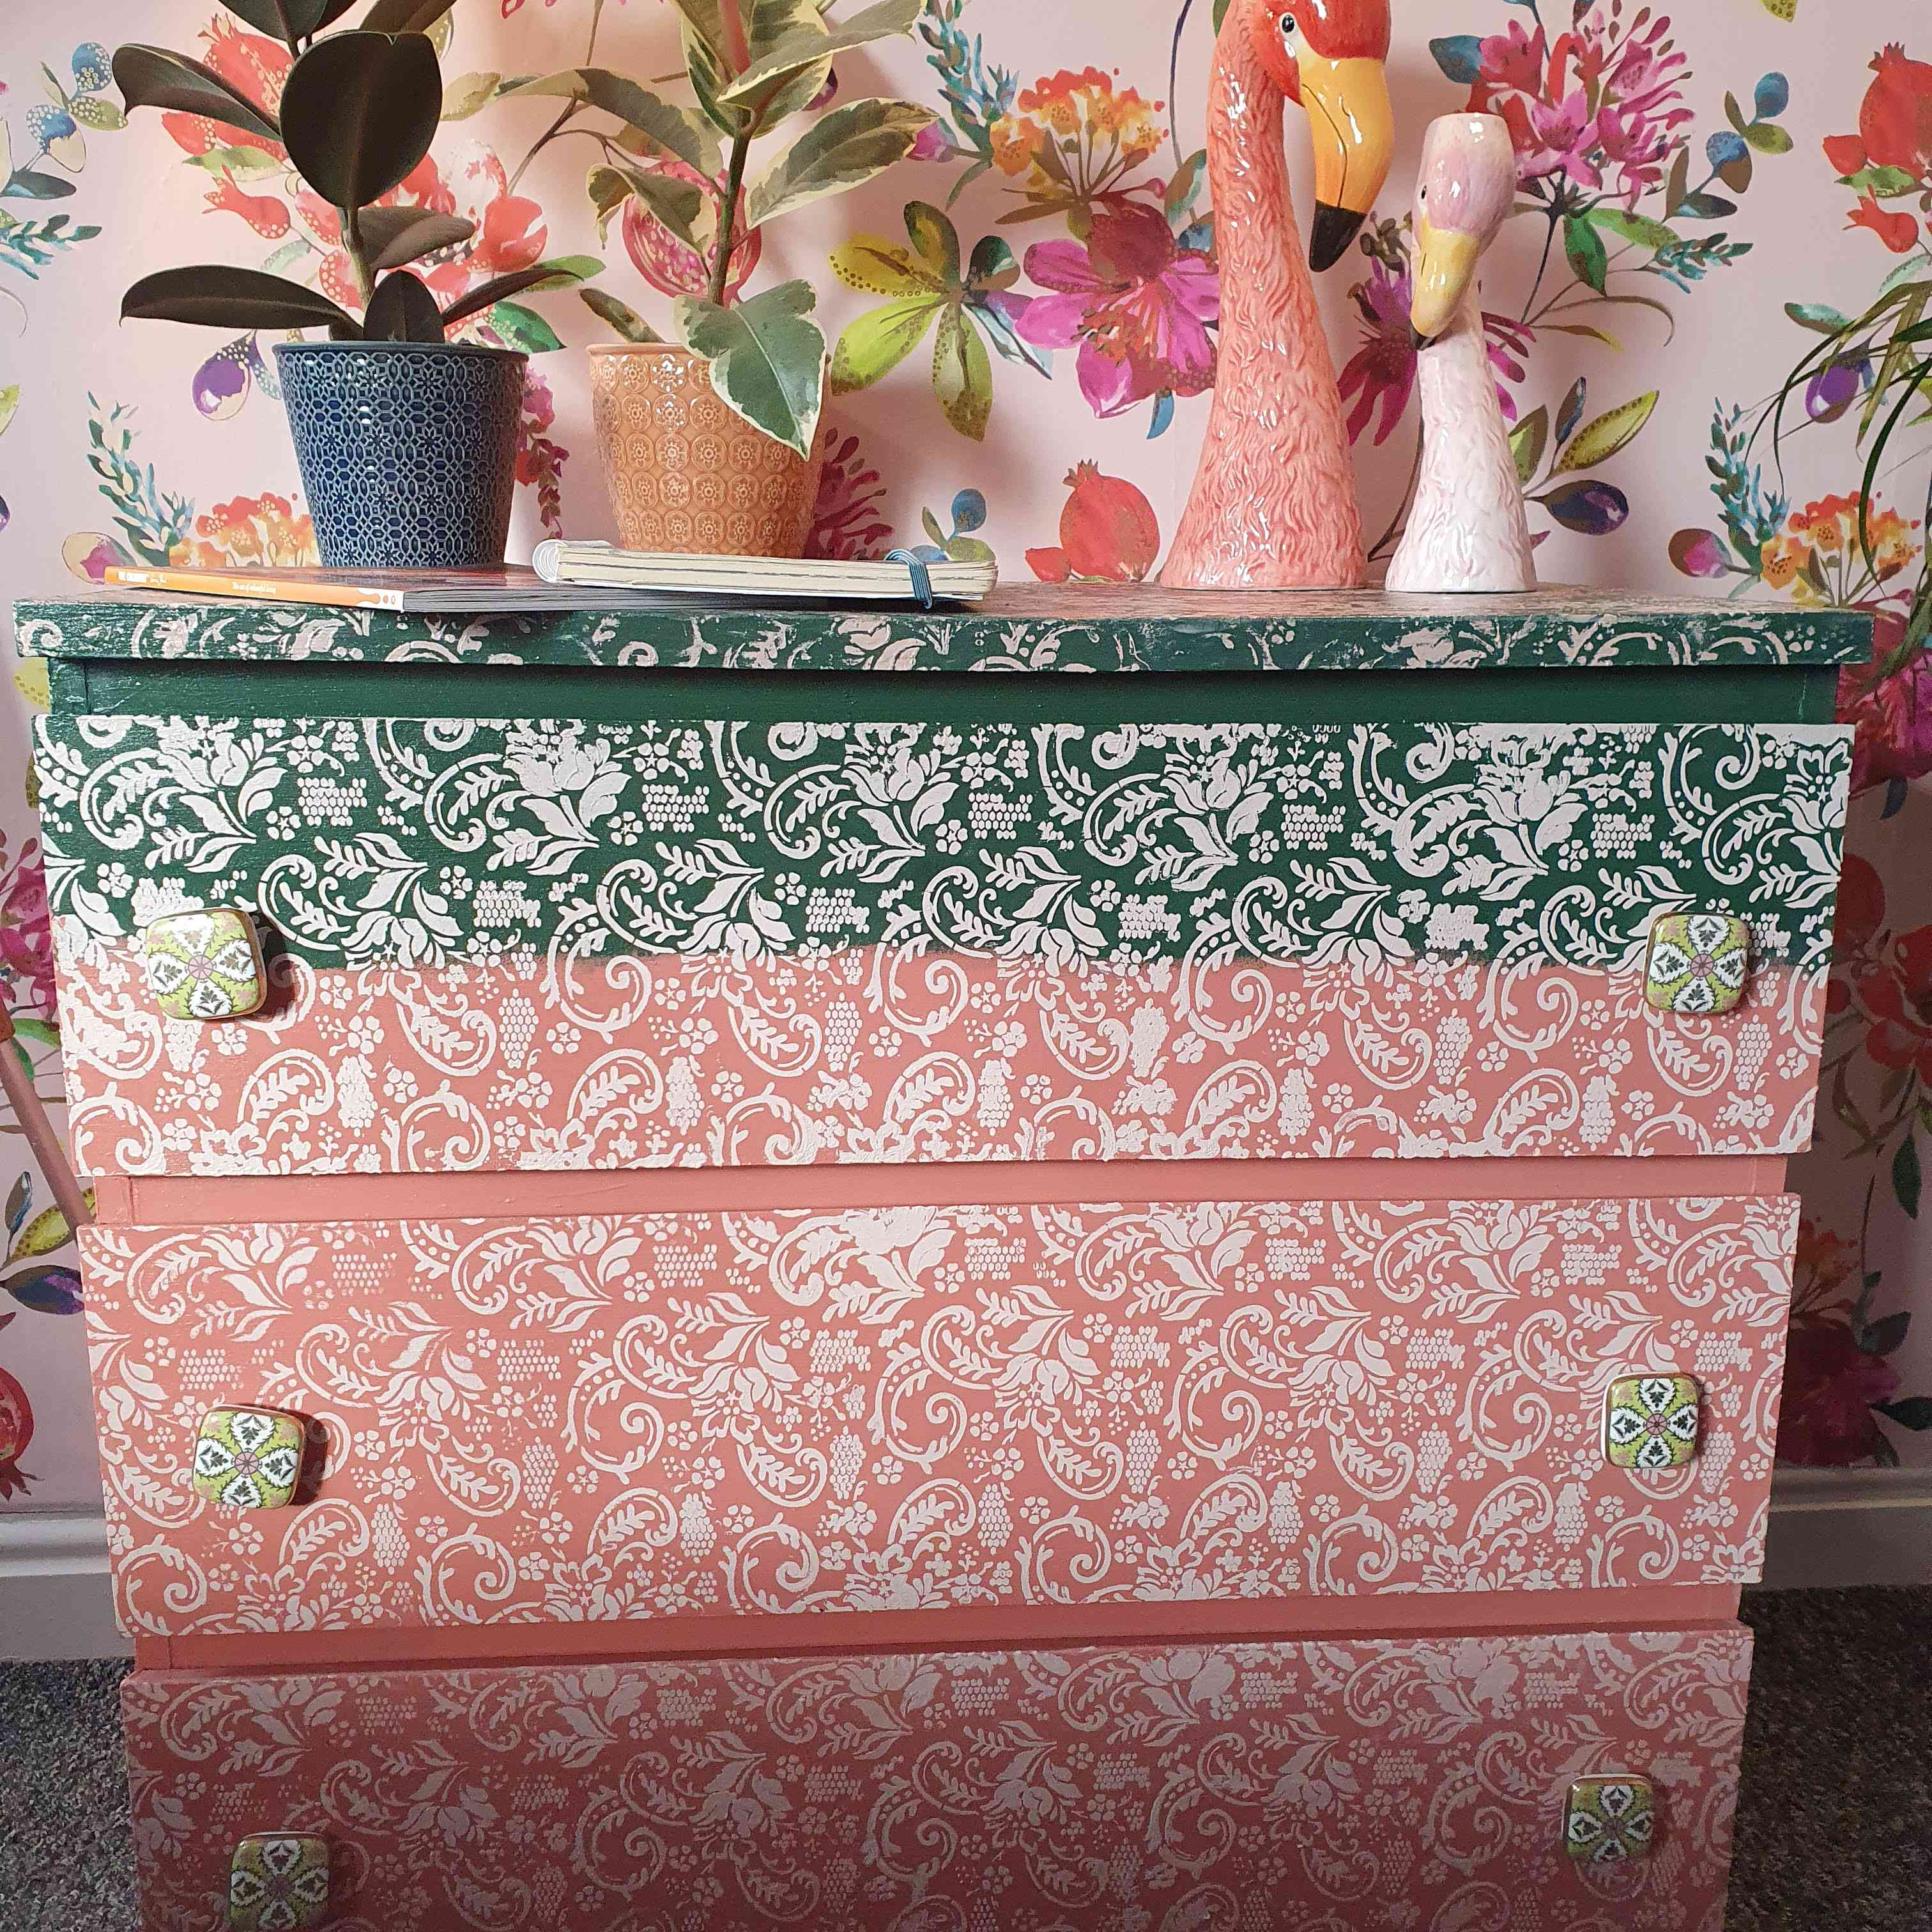 IKEA Malm dresser painted pink and green with white paisley pattern